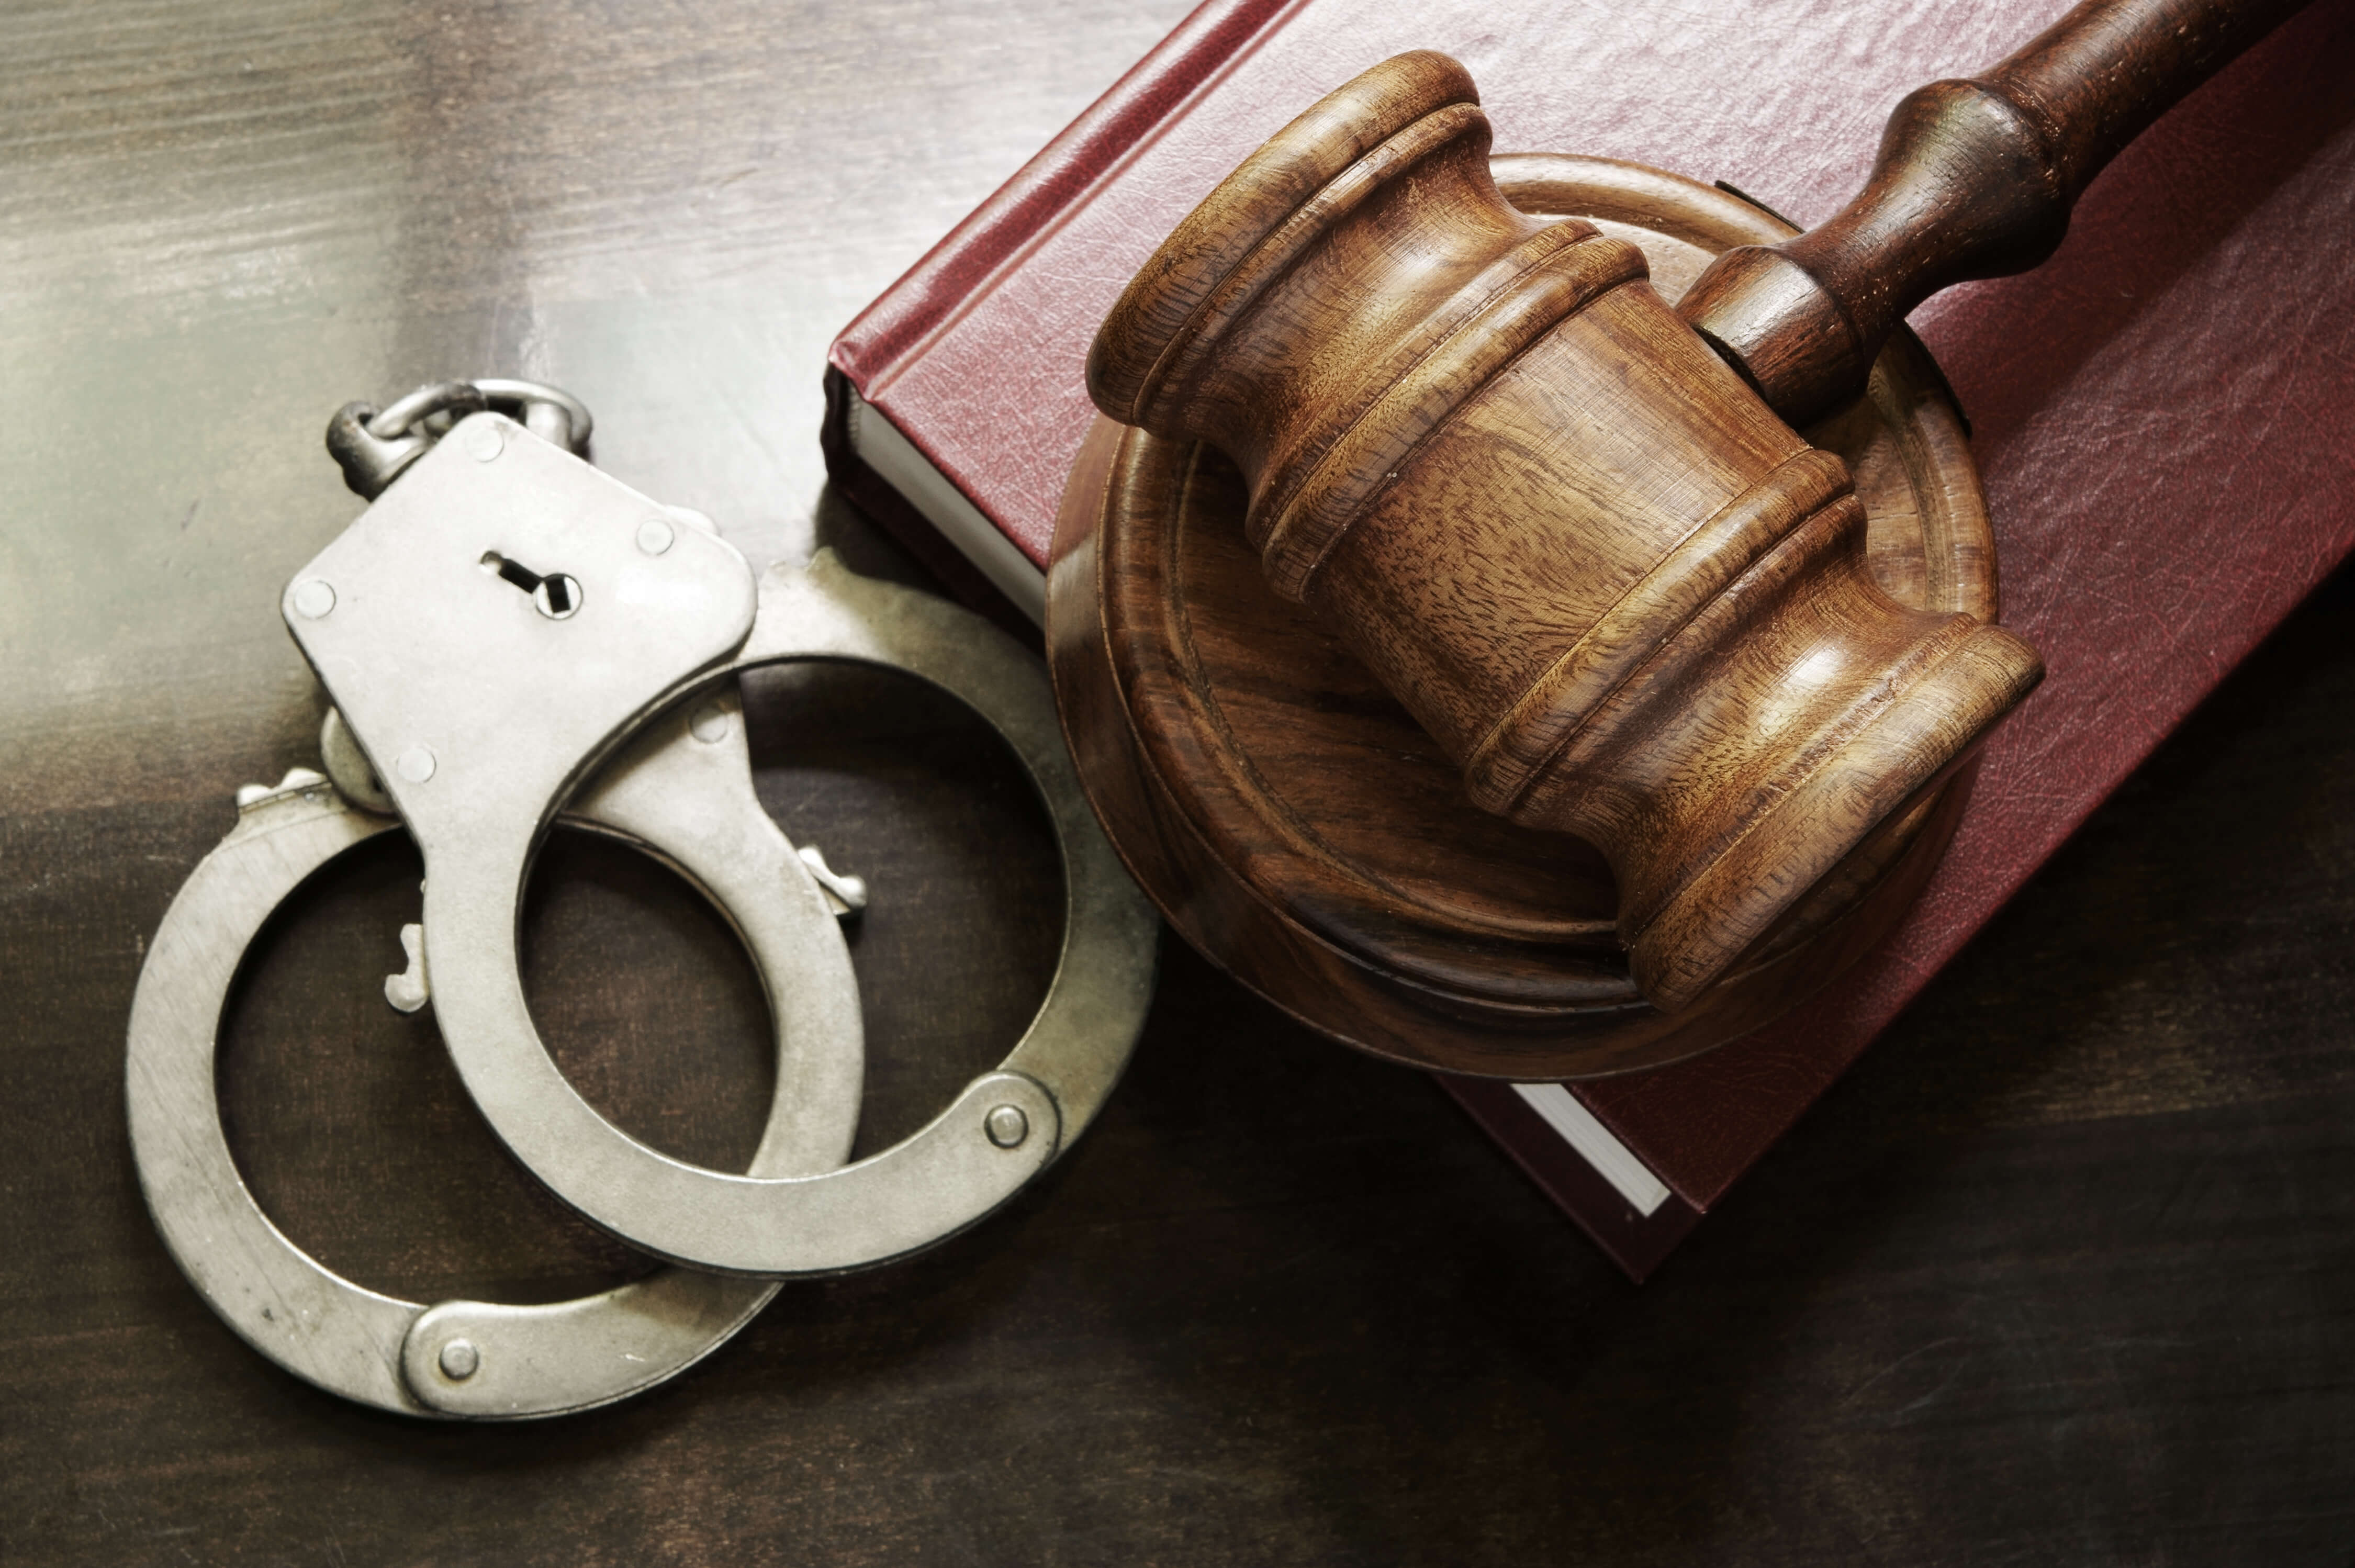 Gavel and handcuffs - post conviction relief attorney